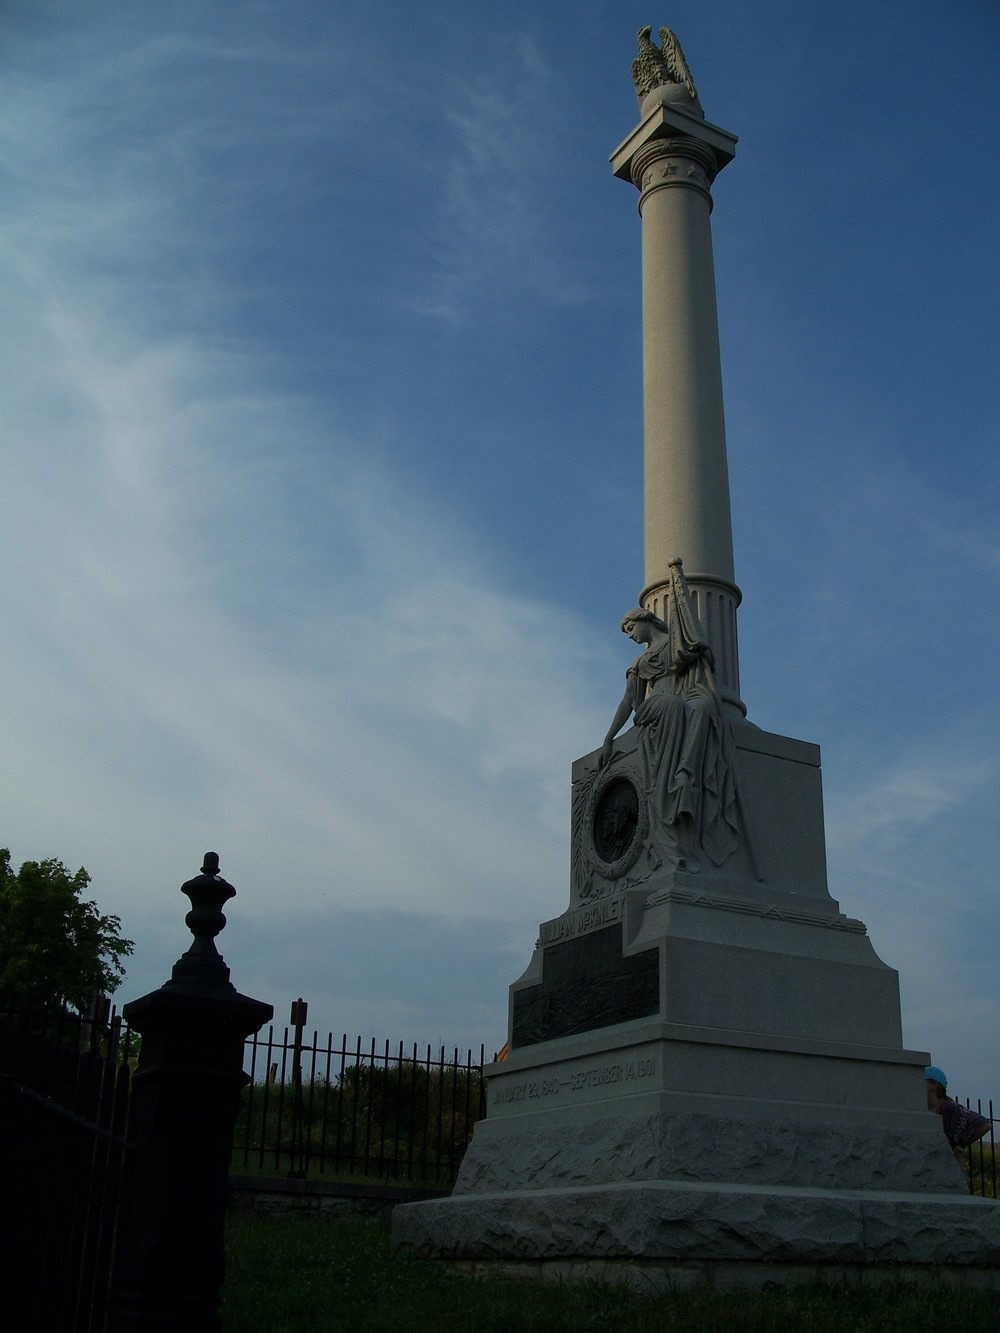 This large monument commemorates McKinley's actions under fire during the Battle of Antietam.